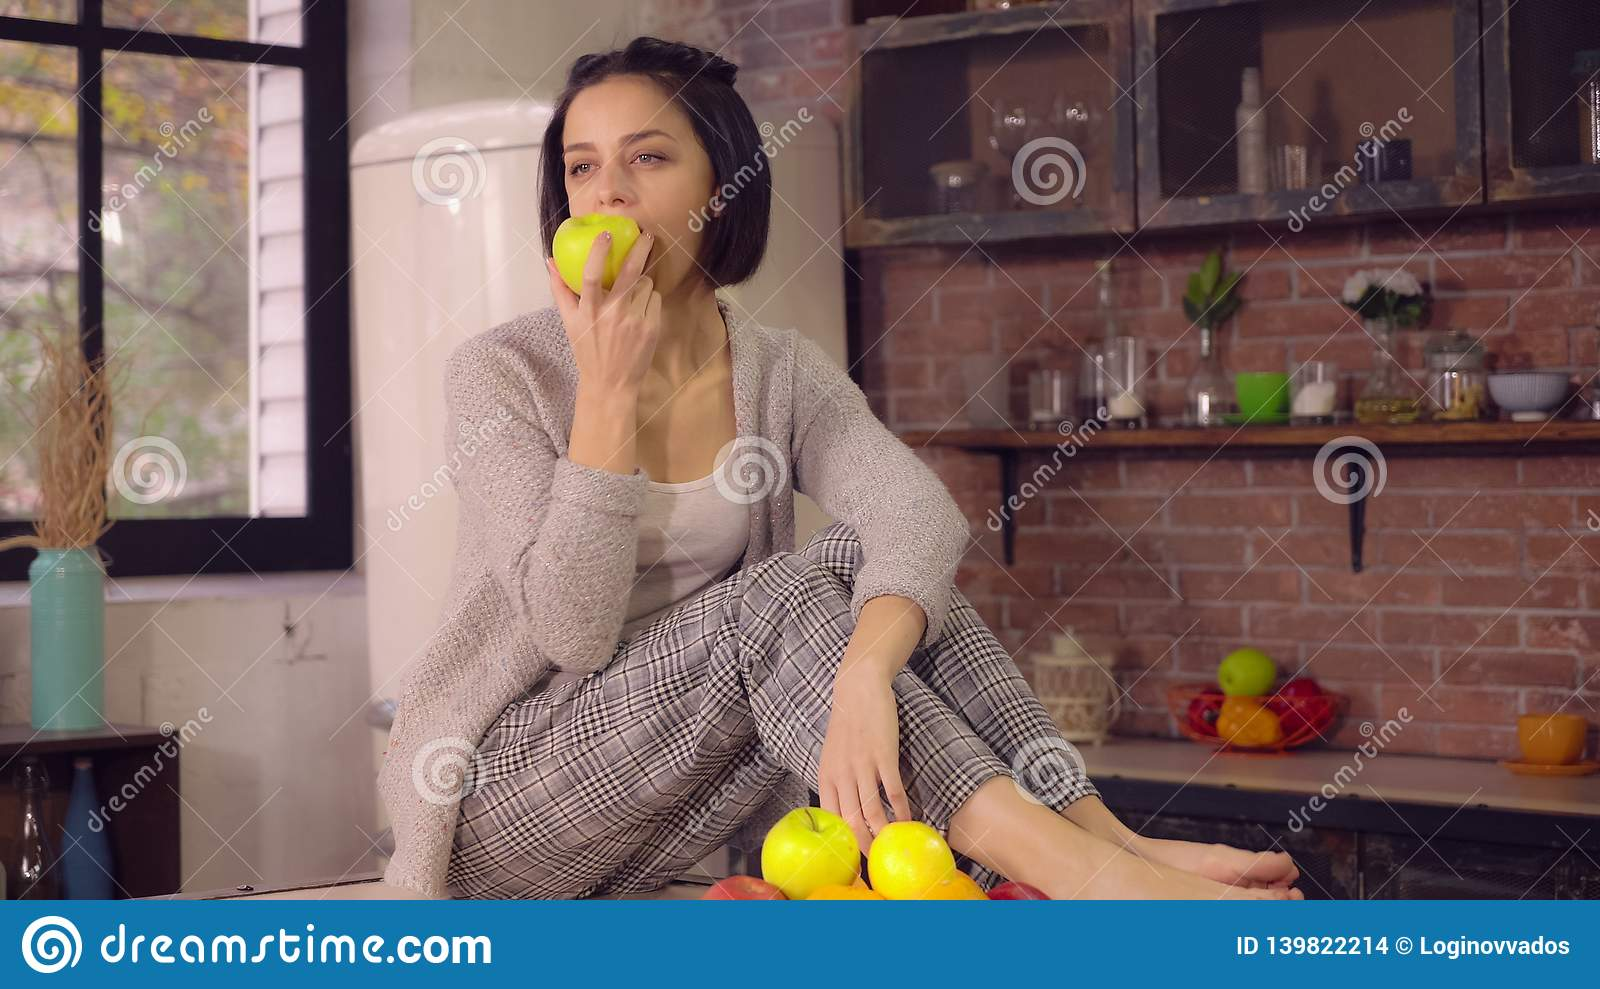 Lady enjoy healthy food at home kitchen.